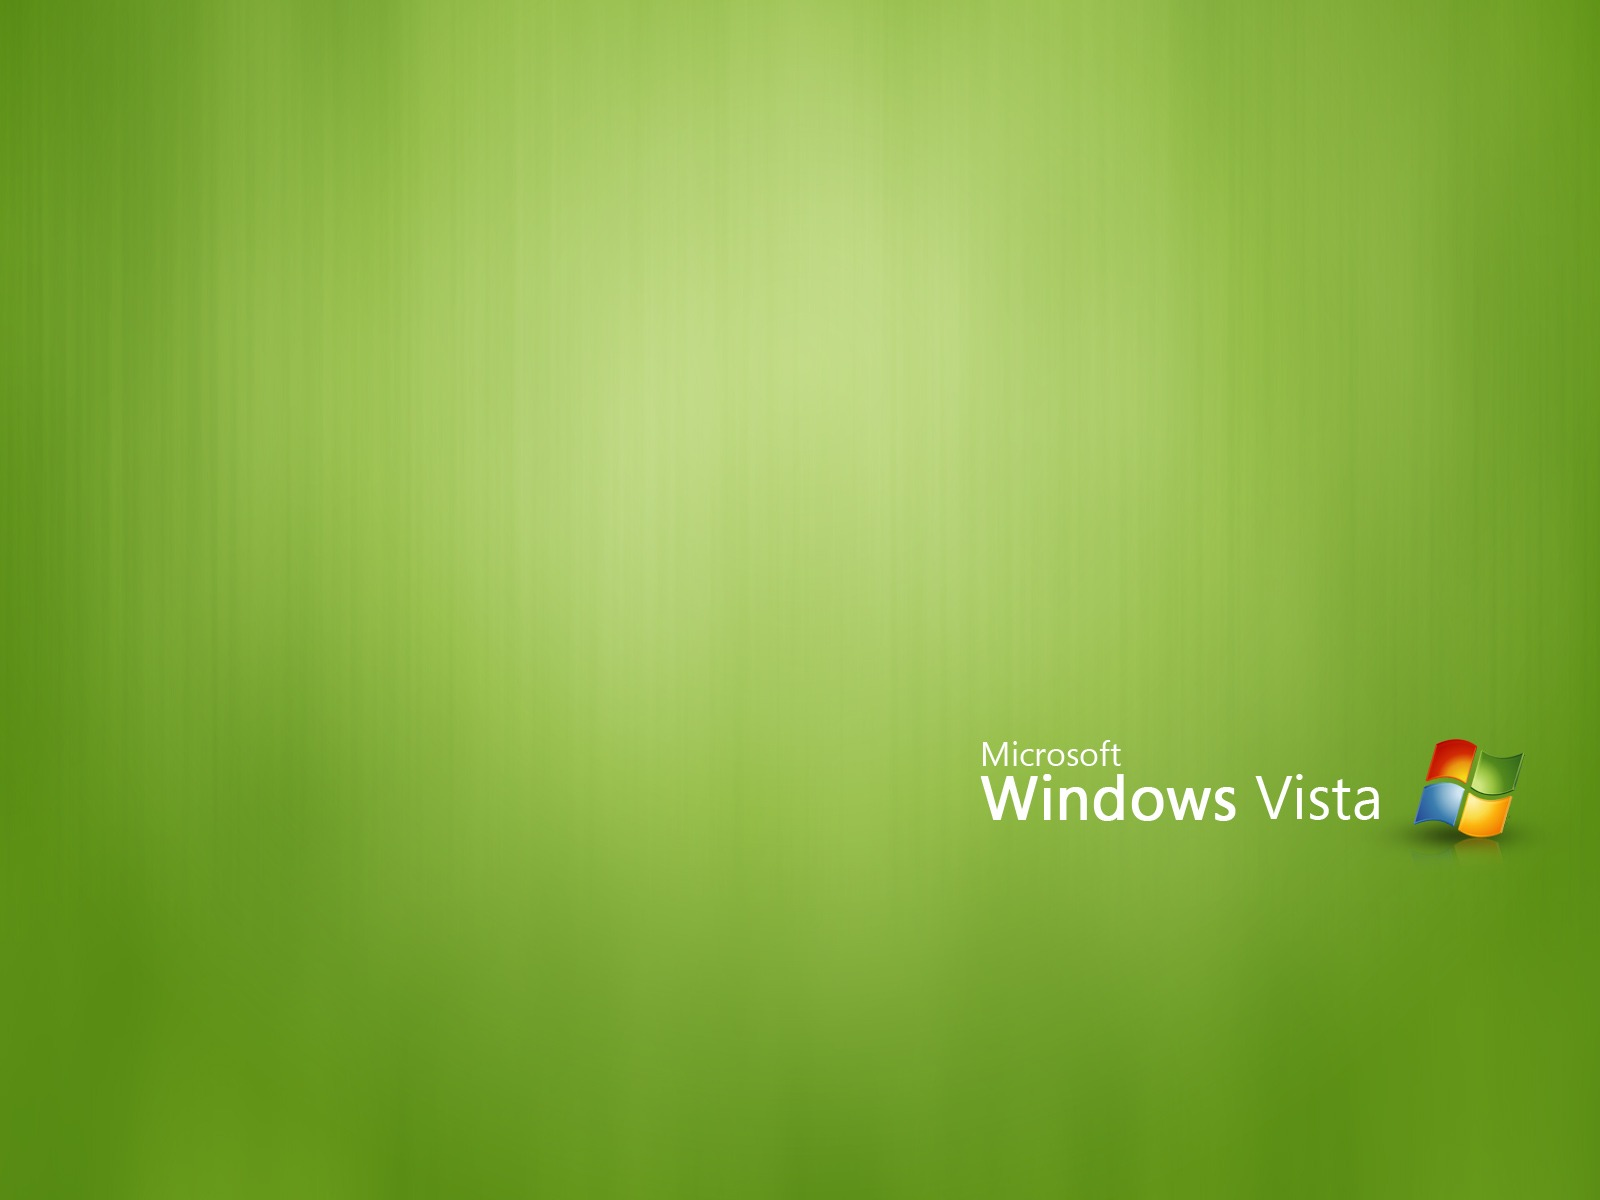 Green Windows Vista 185.57 Kb